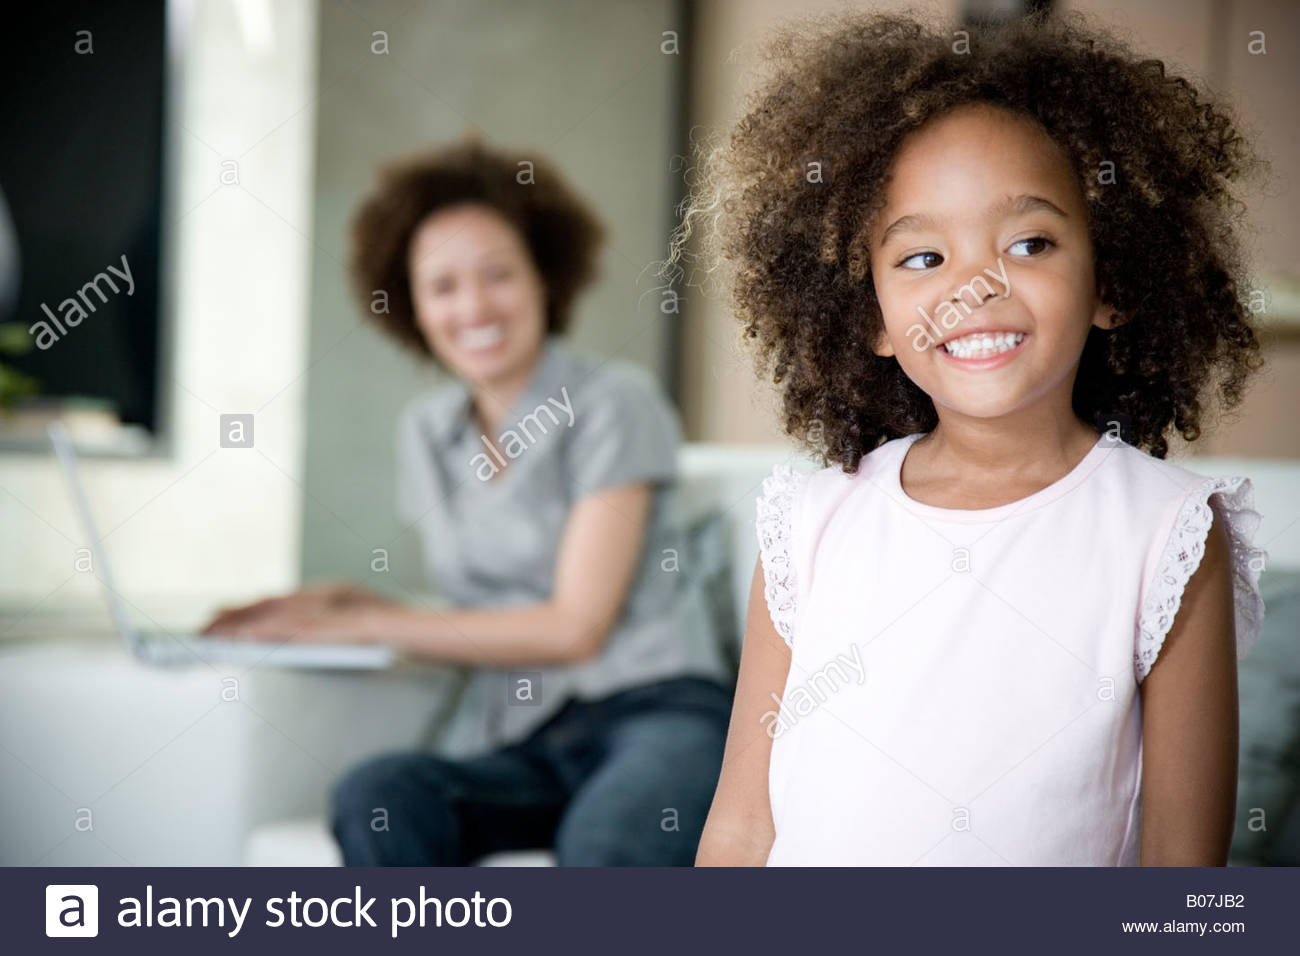 Little girl at home smiling, whilst her mother works on a laptop in the background - Stock Image